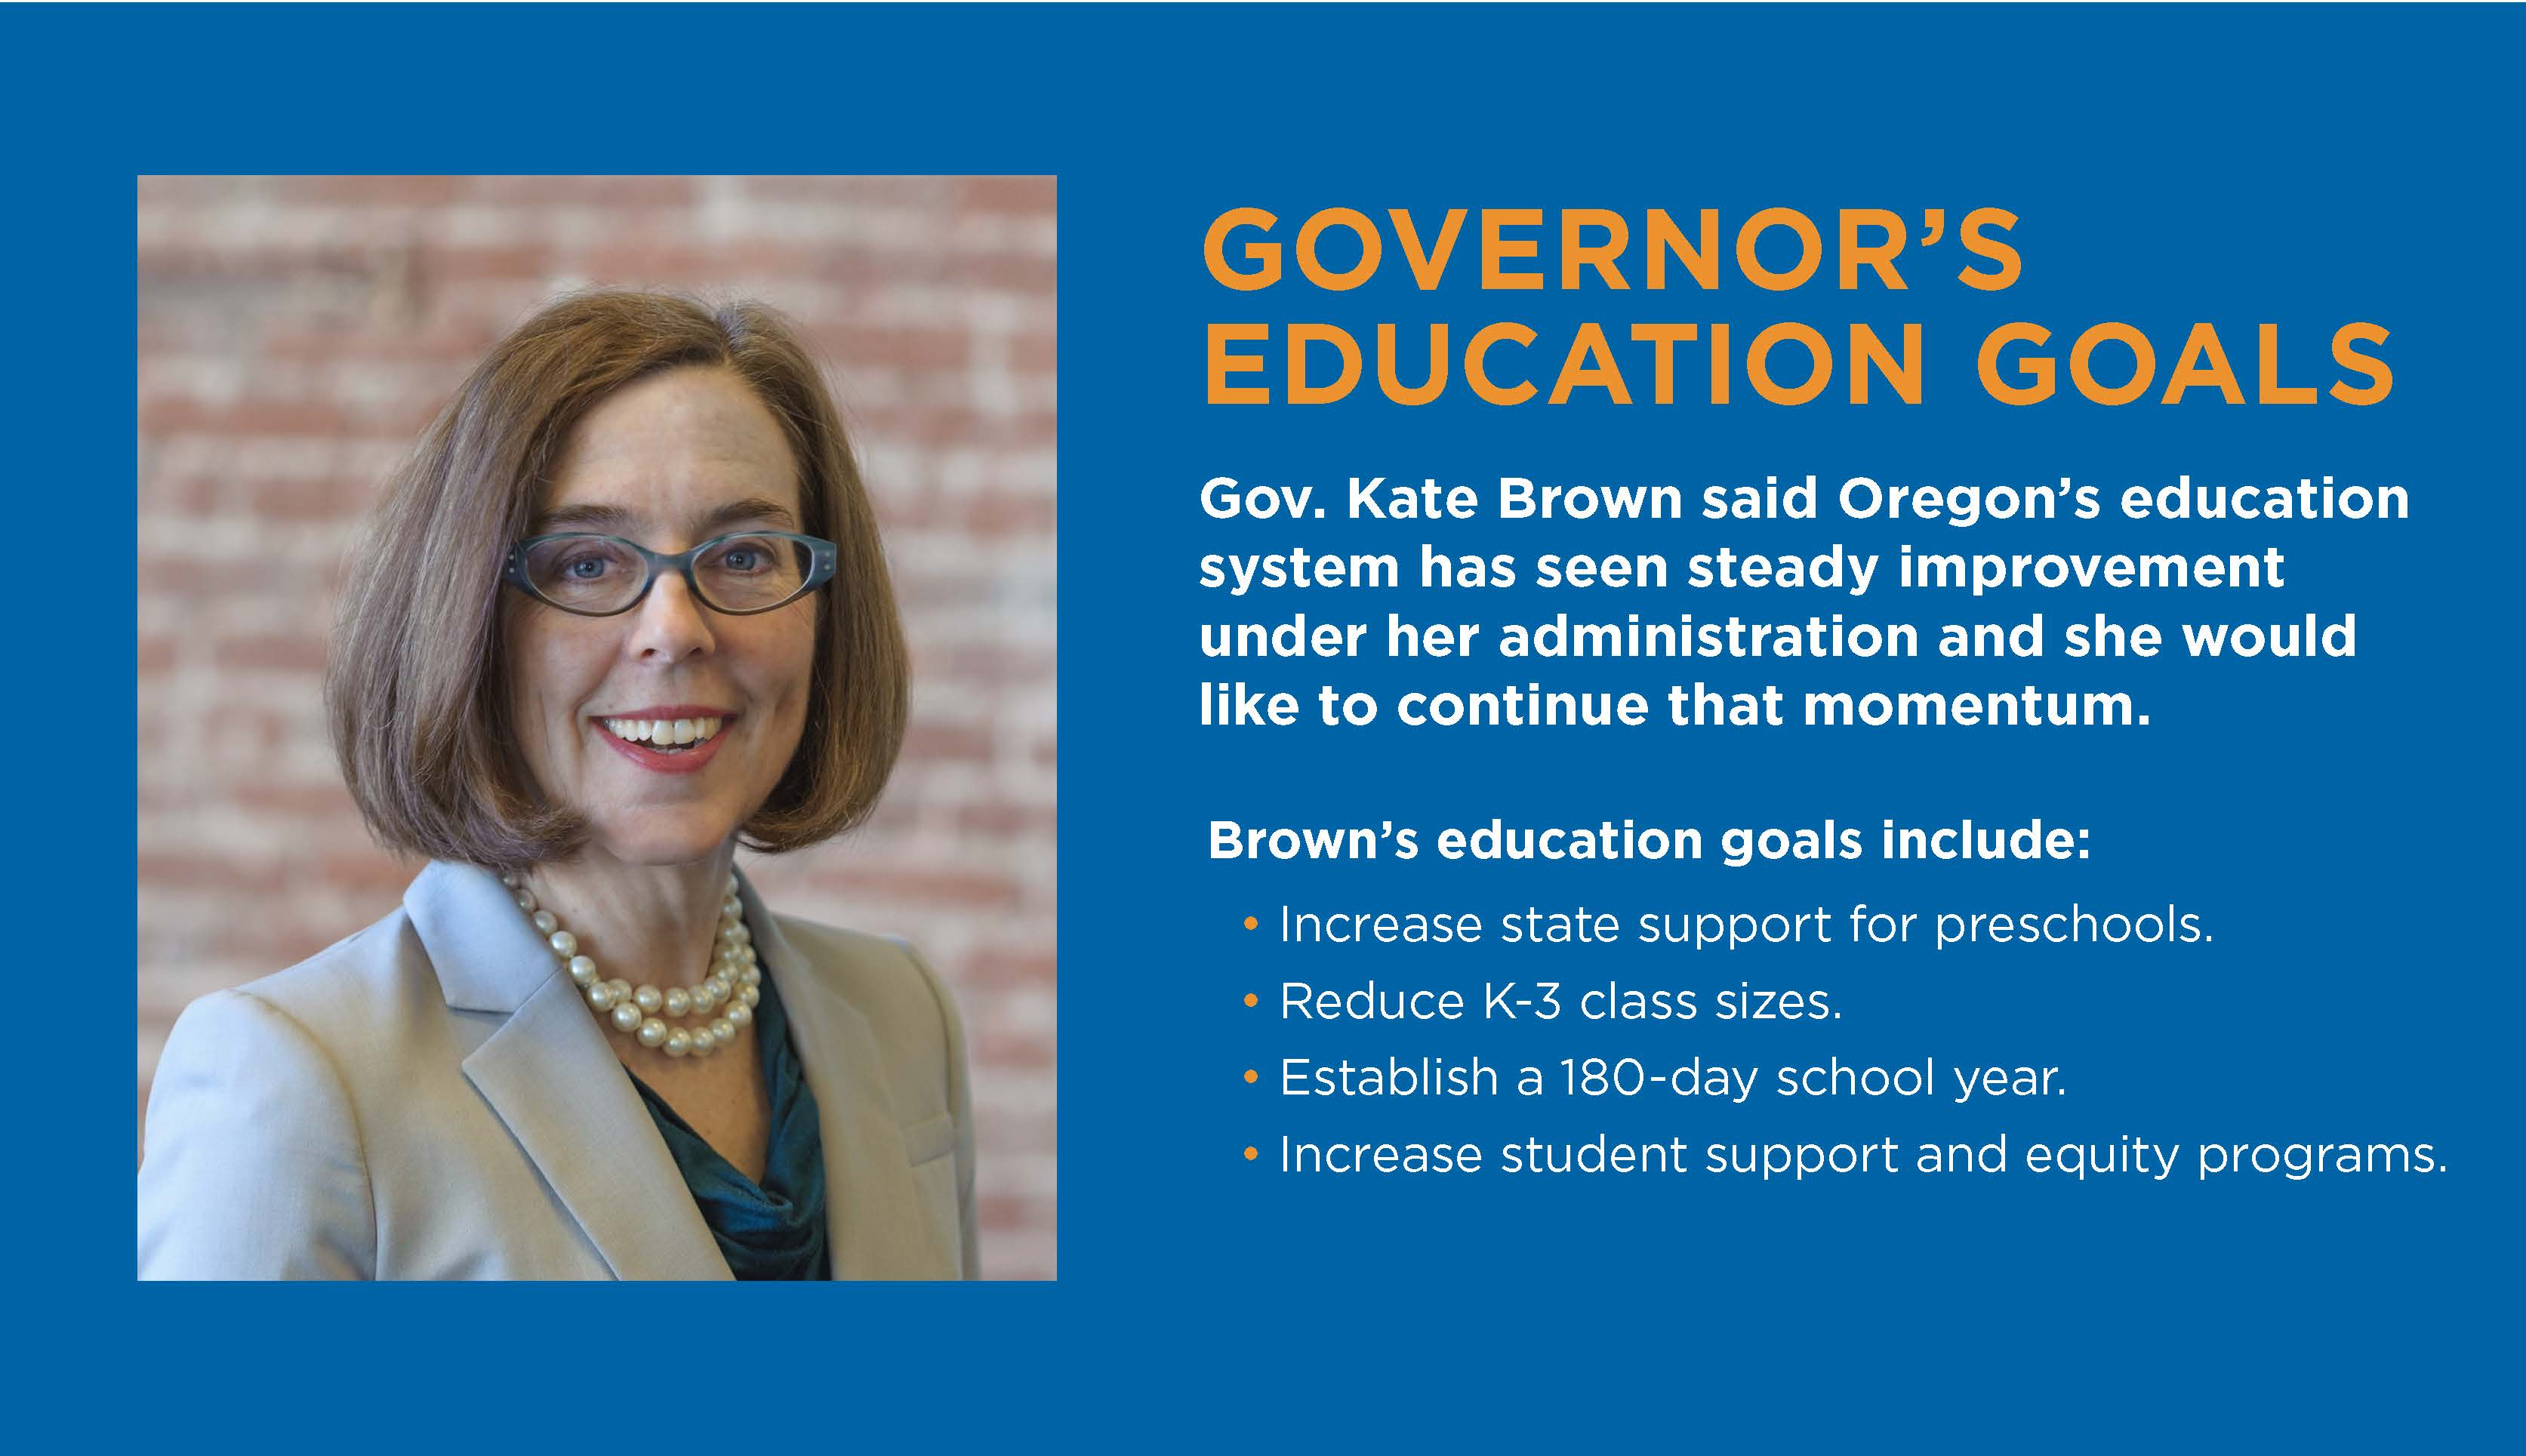 Photo of Kate Brown with her education goals listed